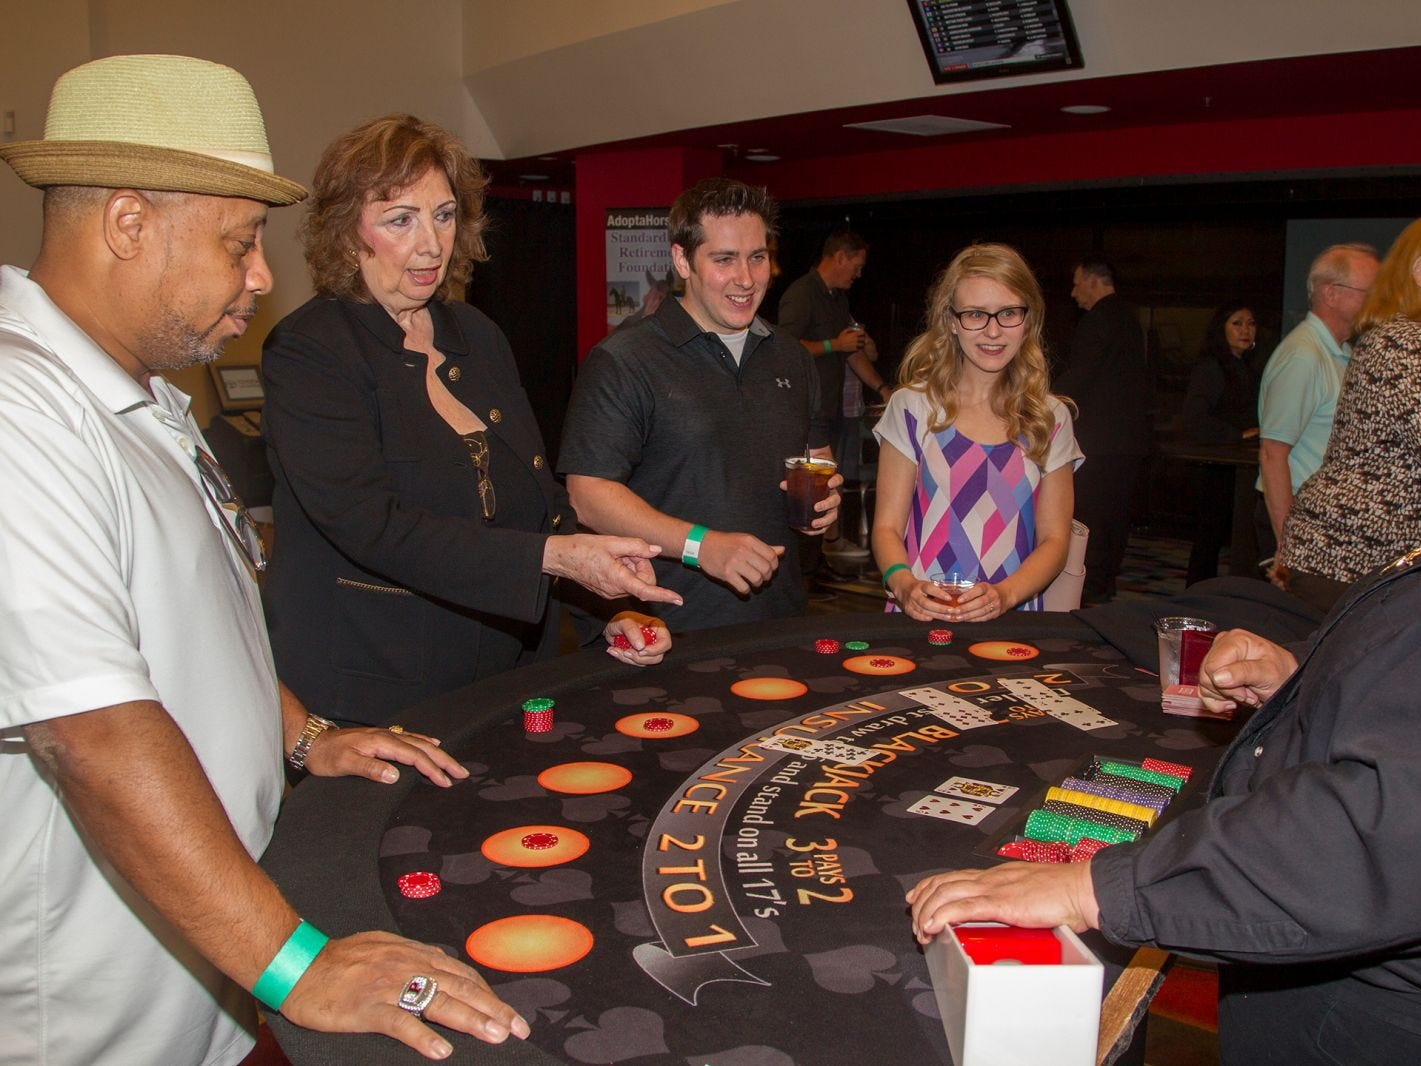 Meadowlands Racetrack hosted its Hambletonian Party in East Rutherford. The casino charity night featured poker, casino games, auctions, and raffles. 08/03/2018